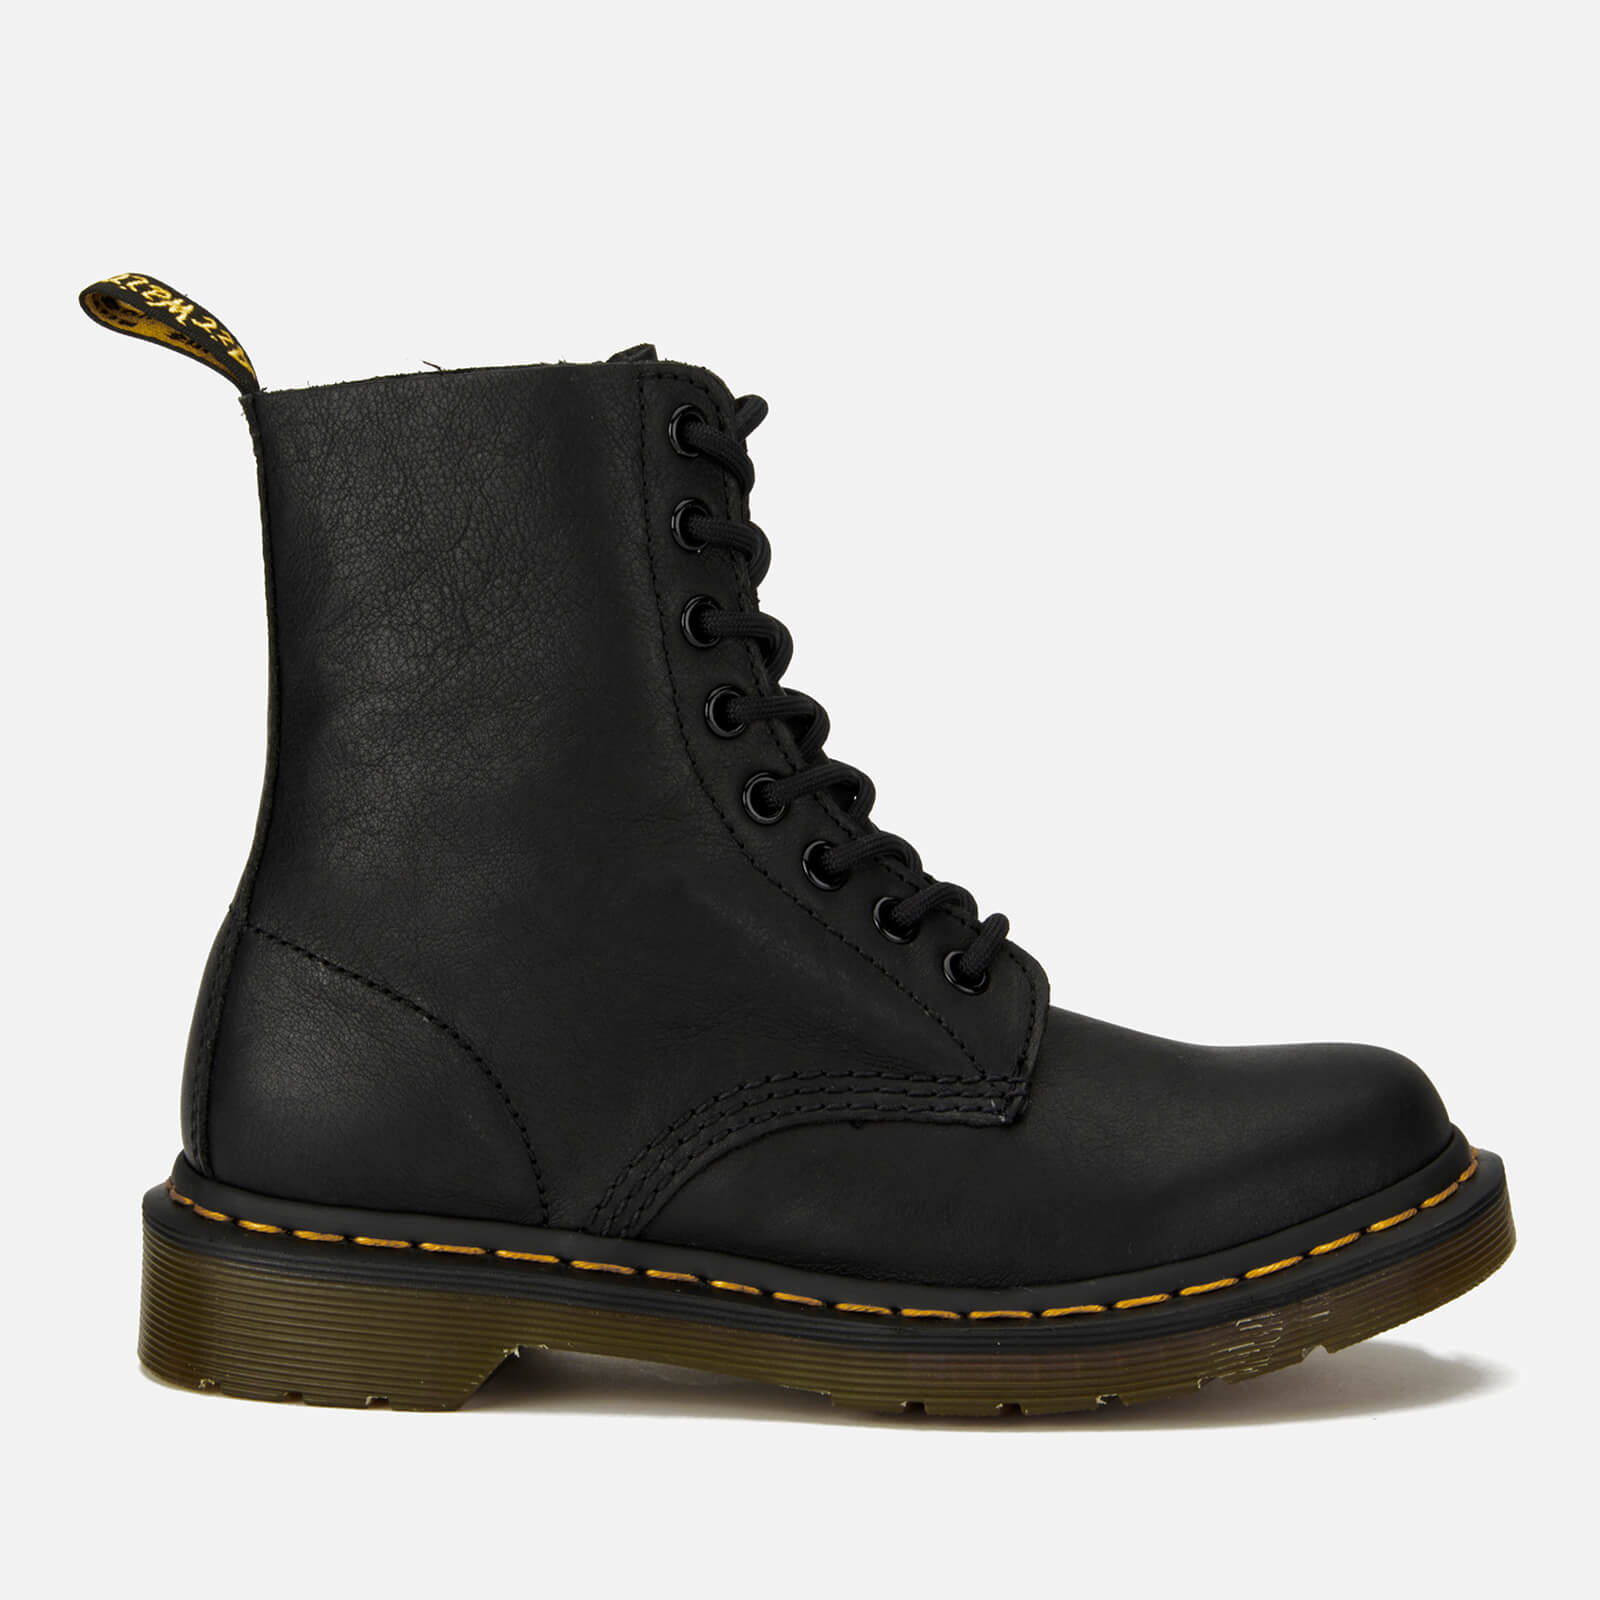 07257448a6d00 Dr. Martens Women s 1460 Pascal Virginia Leather 8-Eye Boots - Black